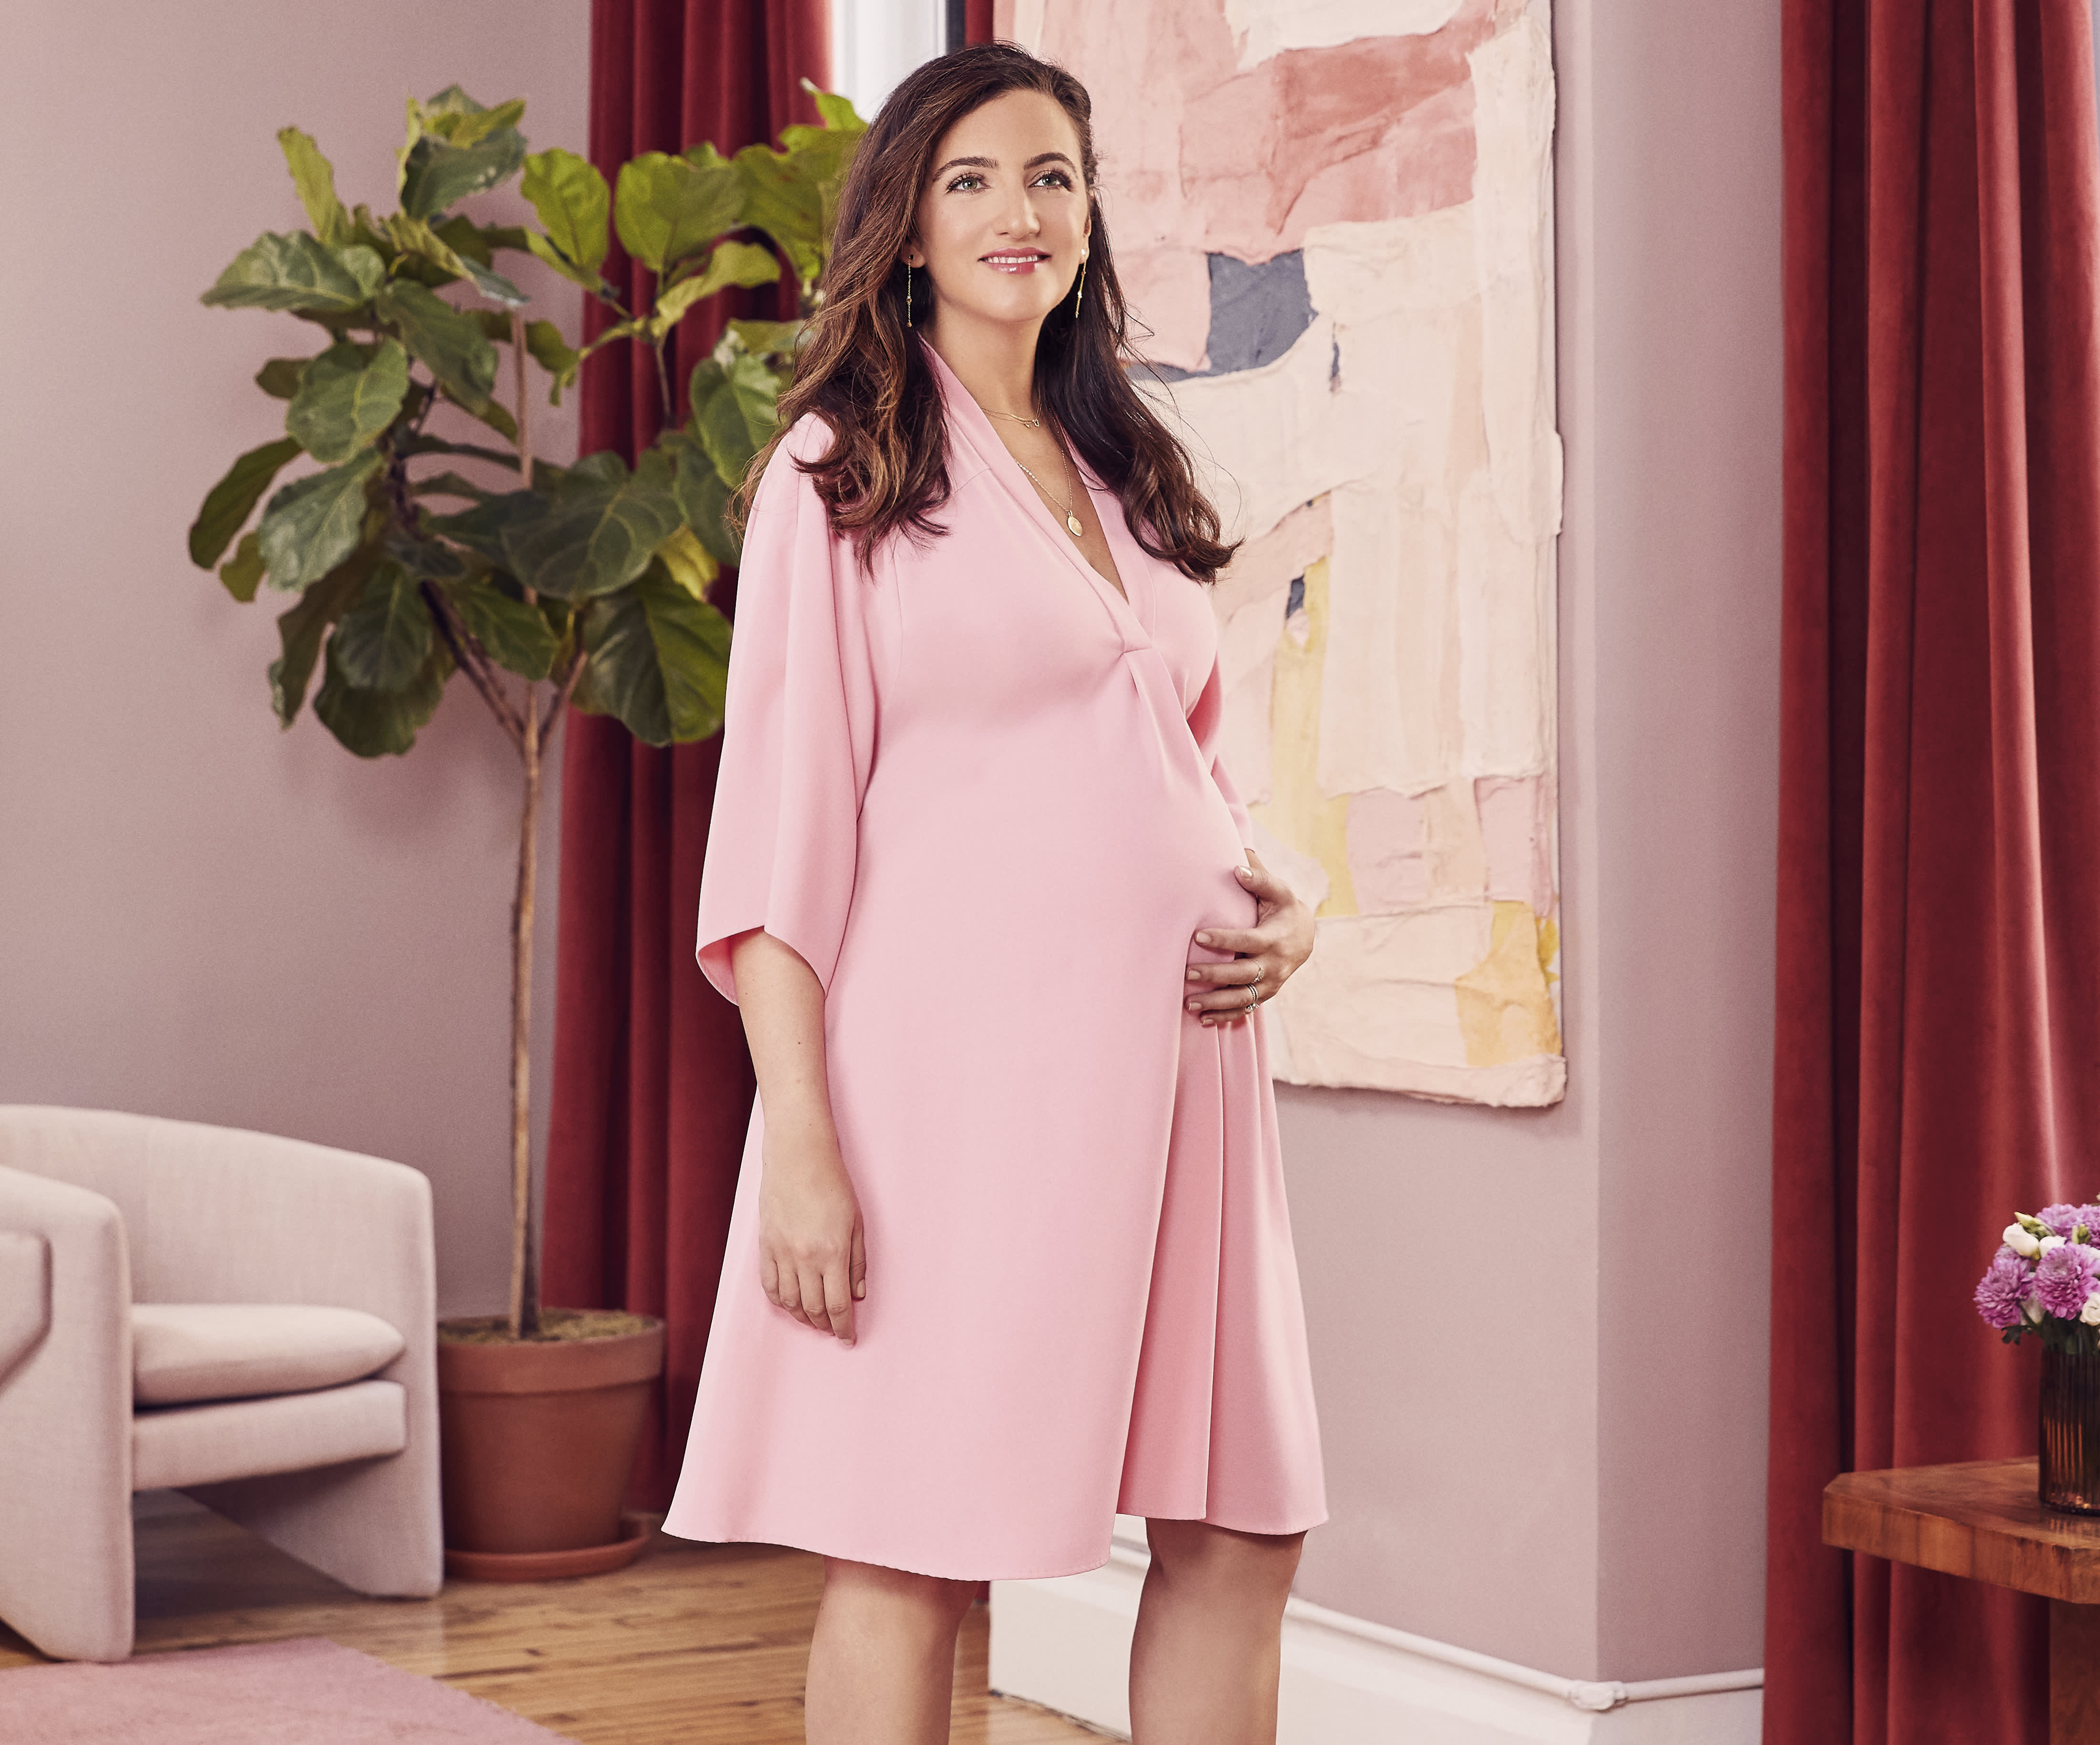 Rent the Runway CEO and co-founder Jennifer Hyman is currently on maternity leave. She plans to take three to four months off from day-to-day leadership of her billion-dollar start-up.